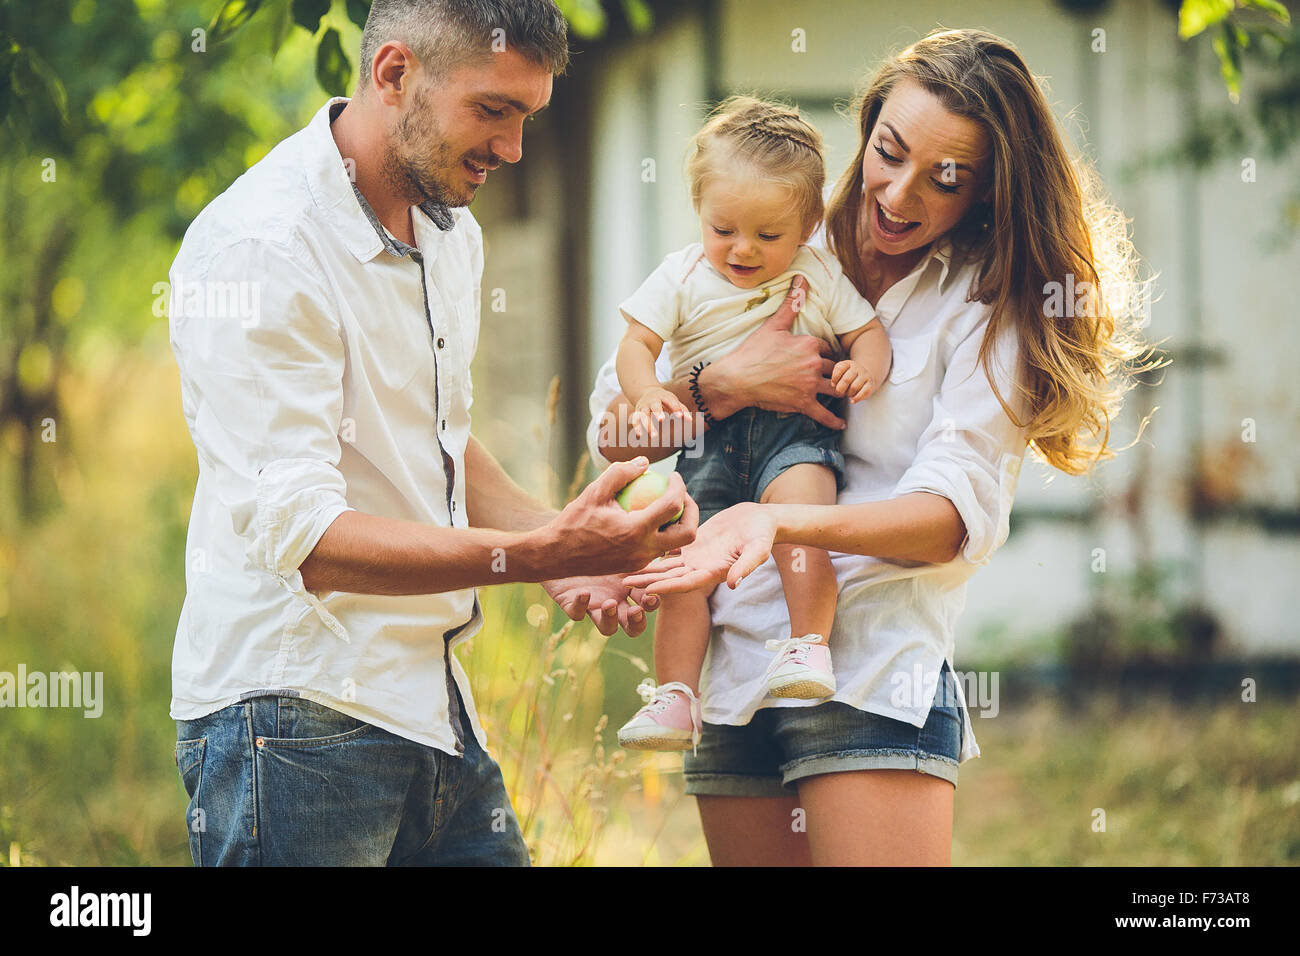 Families with a child in the summer garden - Stock Image